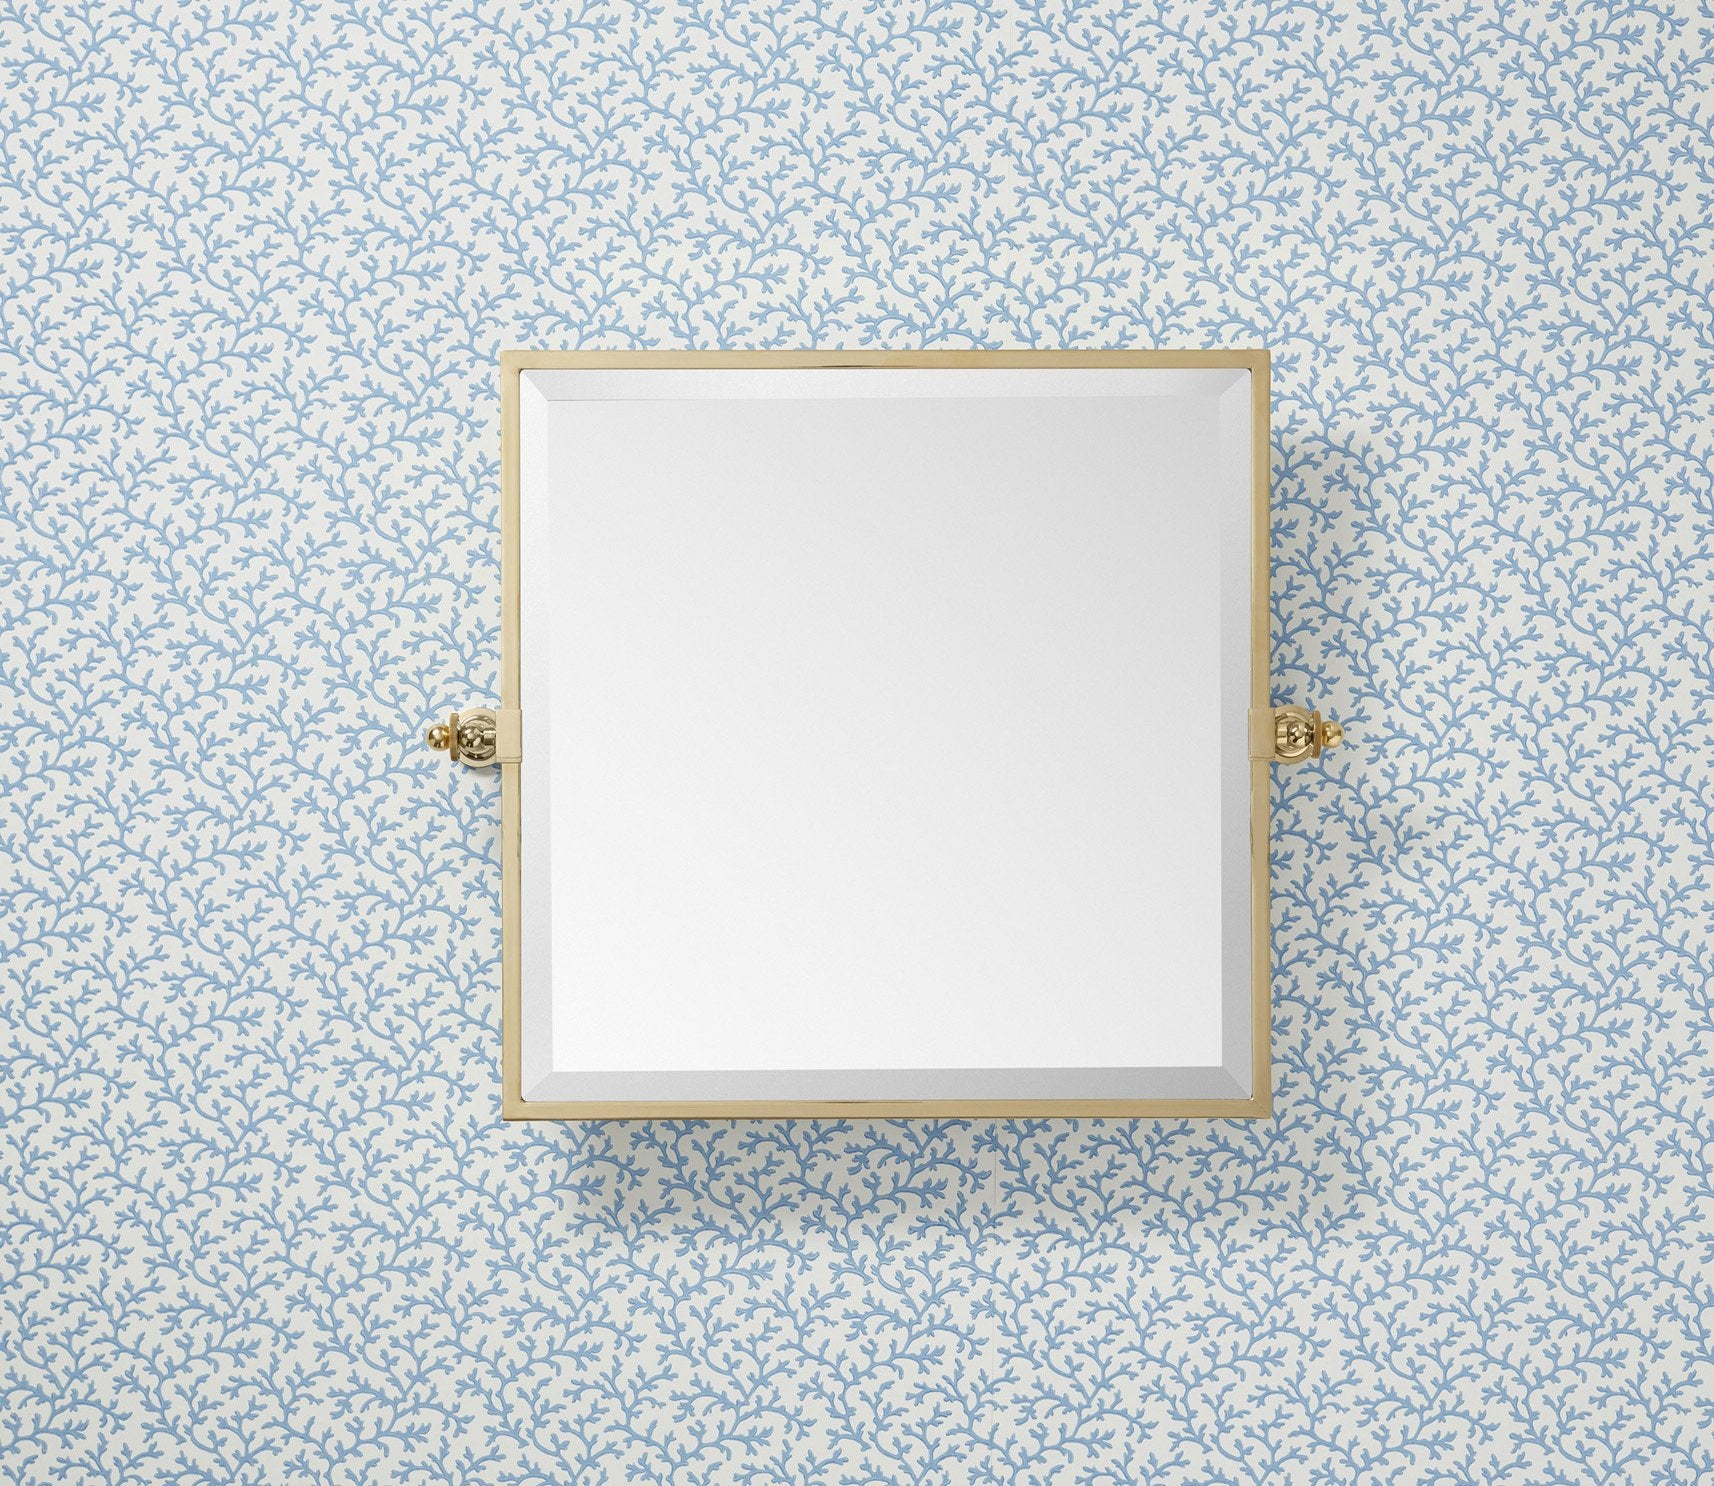 Hanbury Square Tilting Mirror Product Image 1